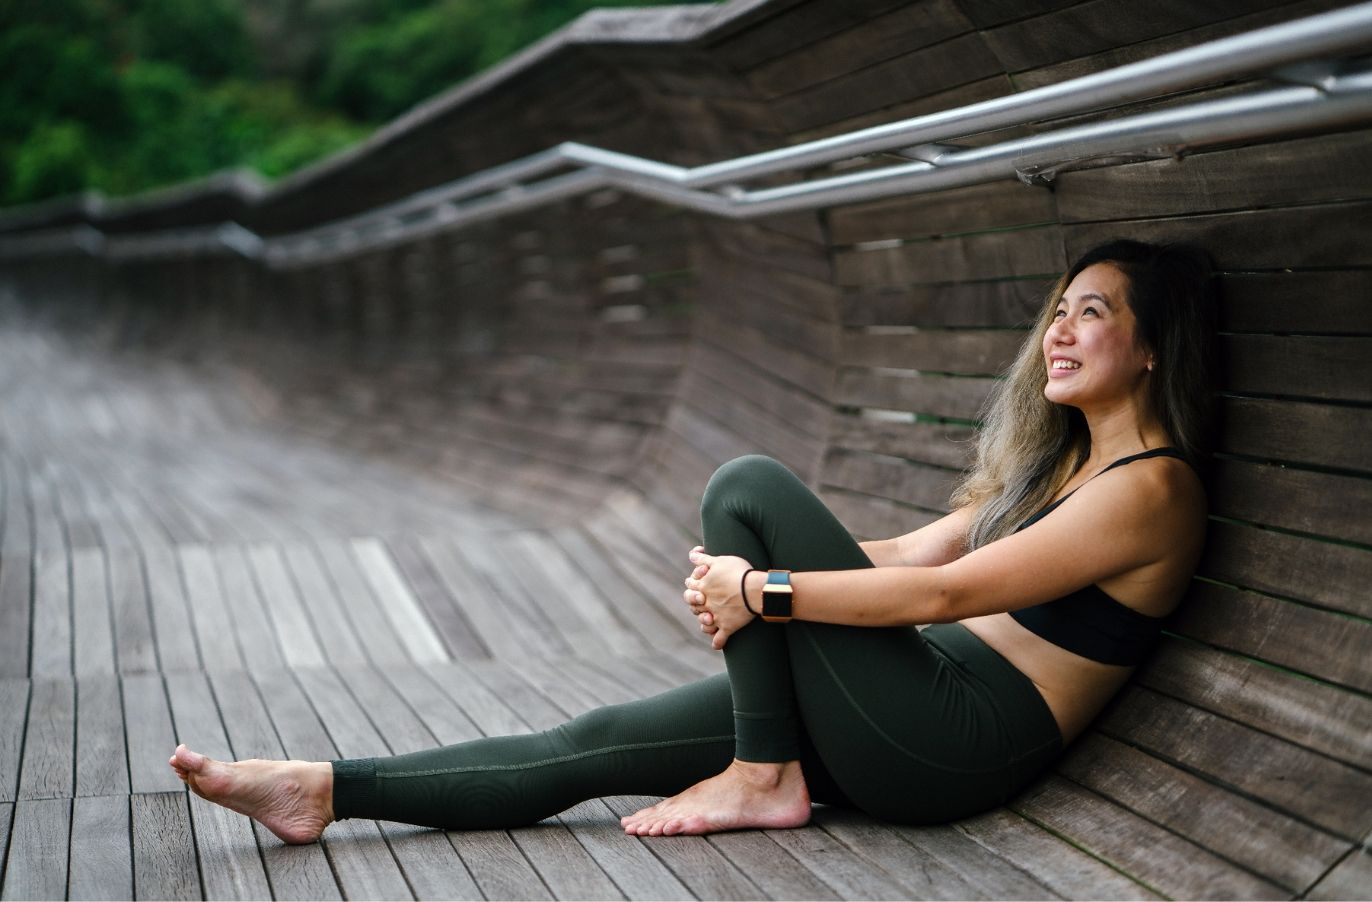 woman in sports bra and legging leaning against a wooden walkway smiling and holding her knee